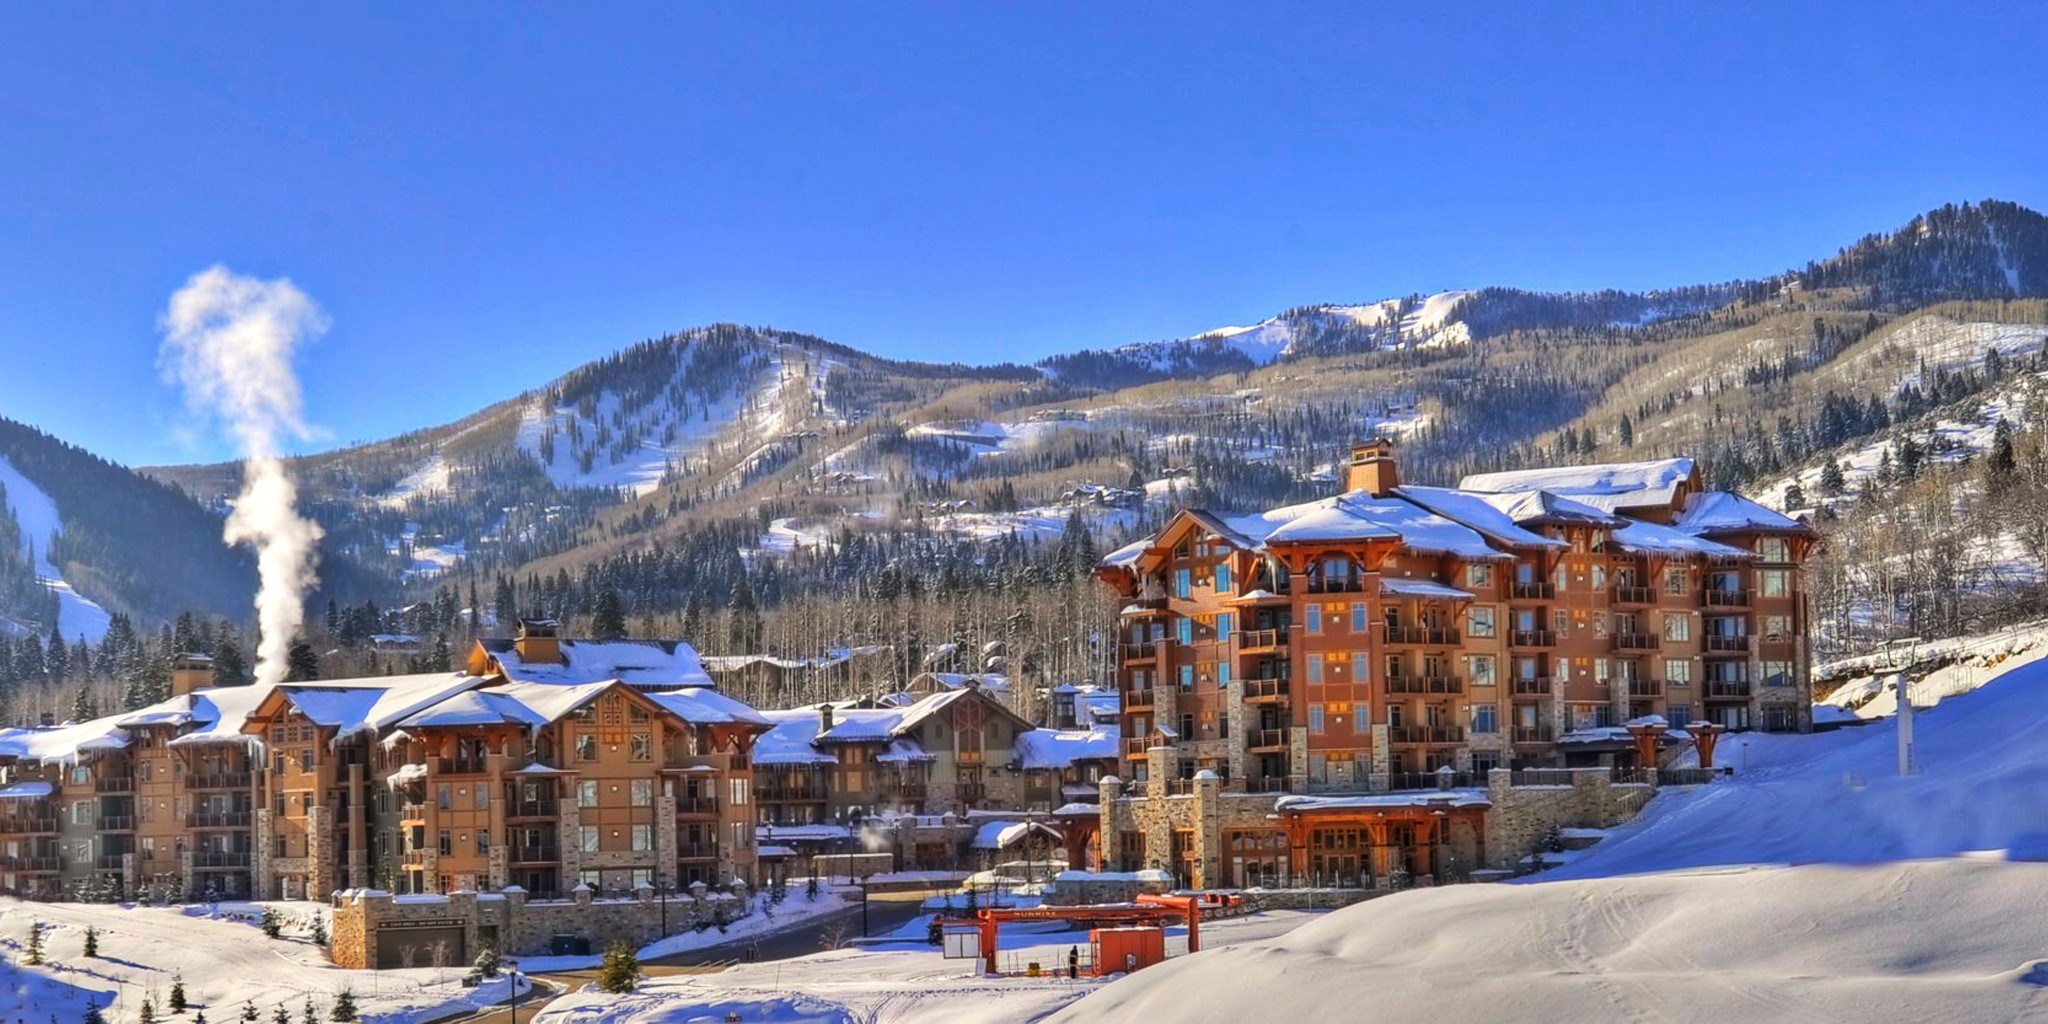 Best Ski Resorts In Colorado For Beginners